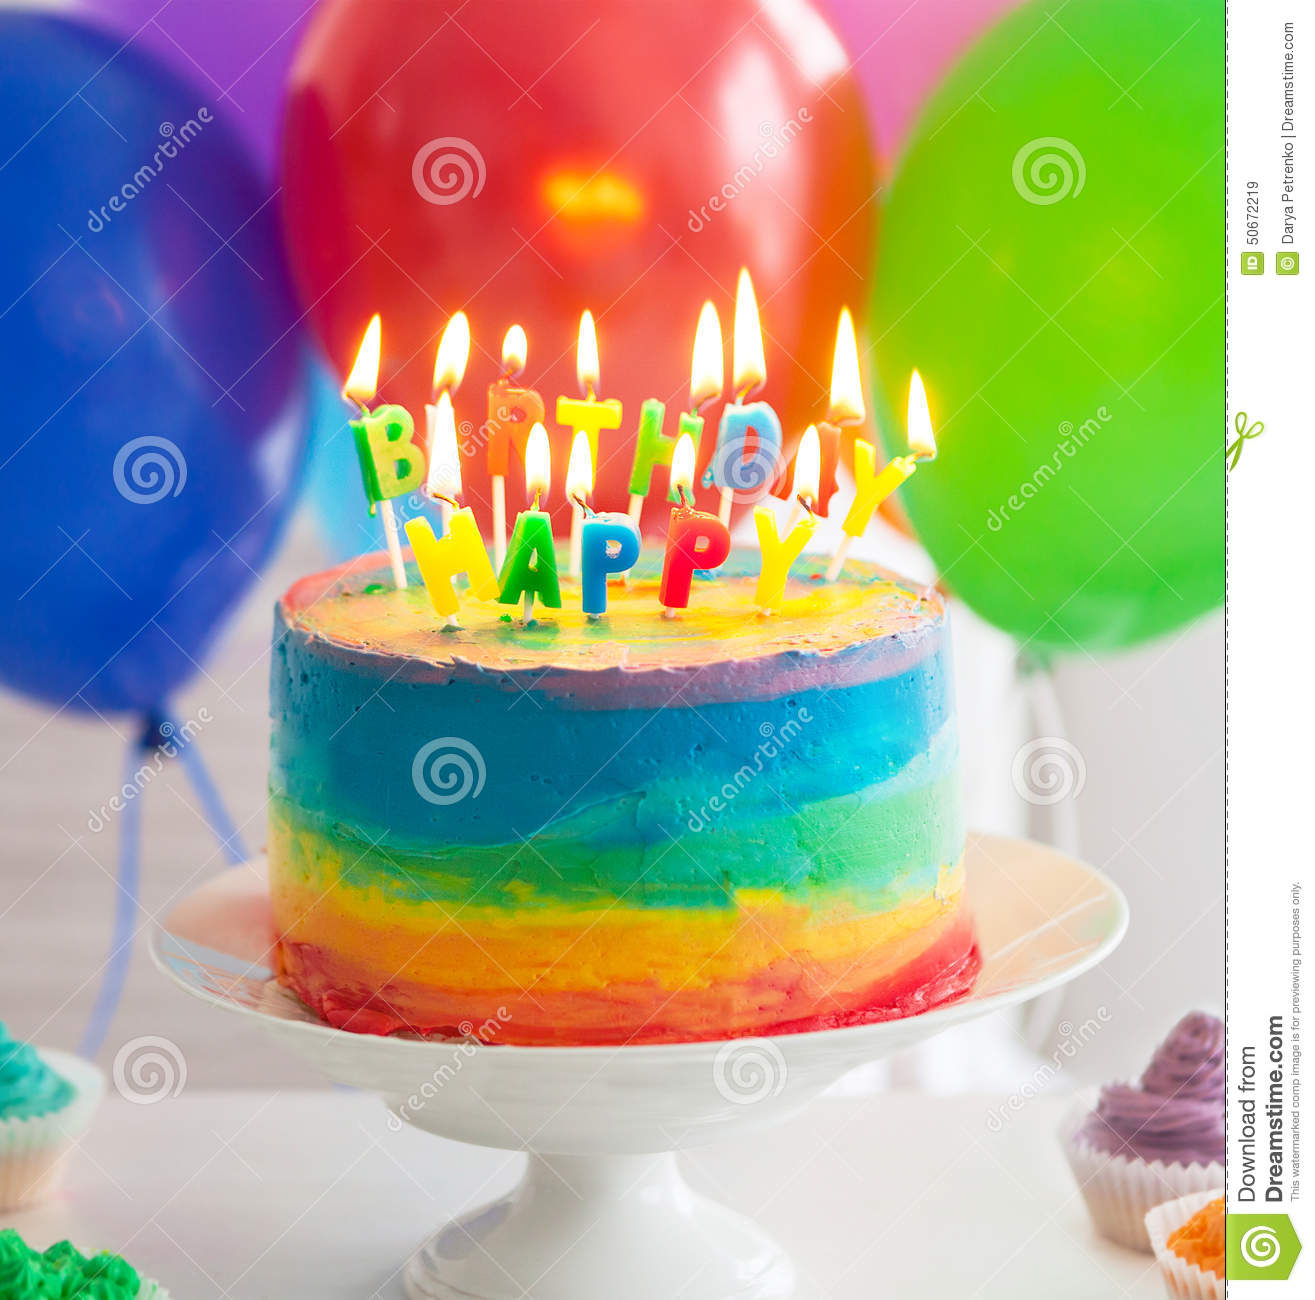 rainbow-cake-cupcakes-decorated-birthday-candles-balloons-background-50672219